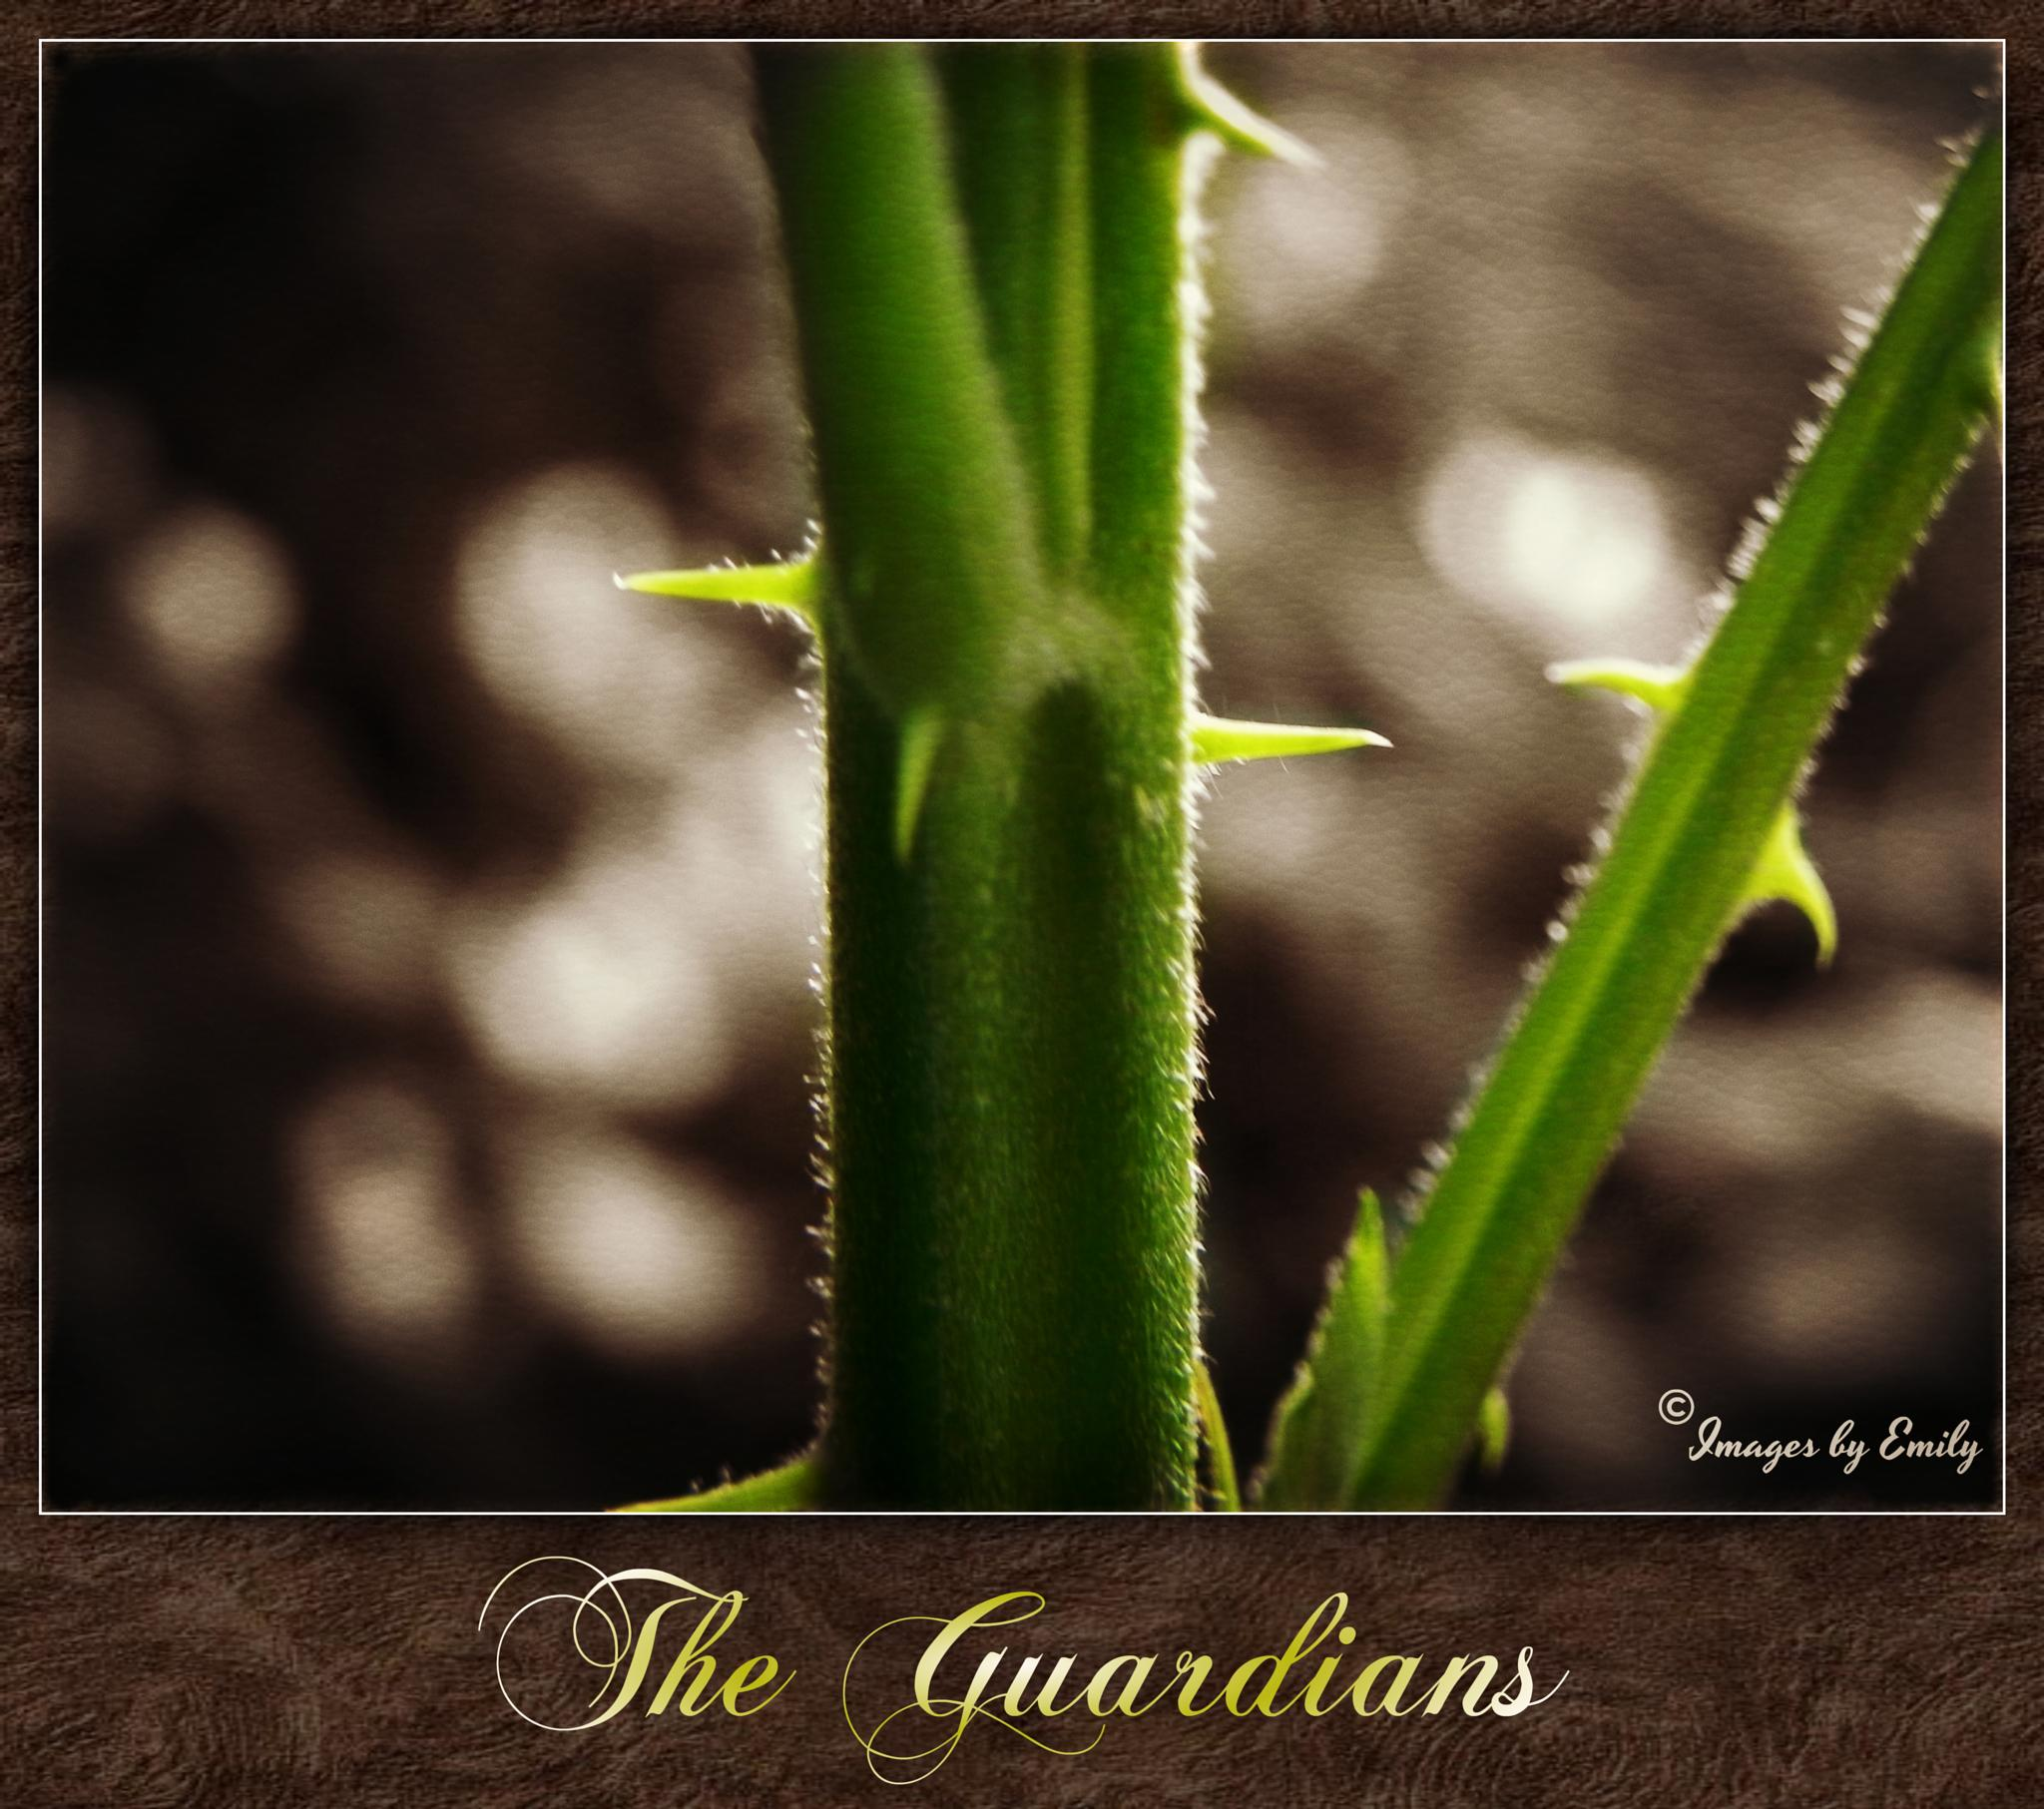 The Guardians by Emily Grant